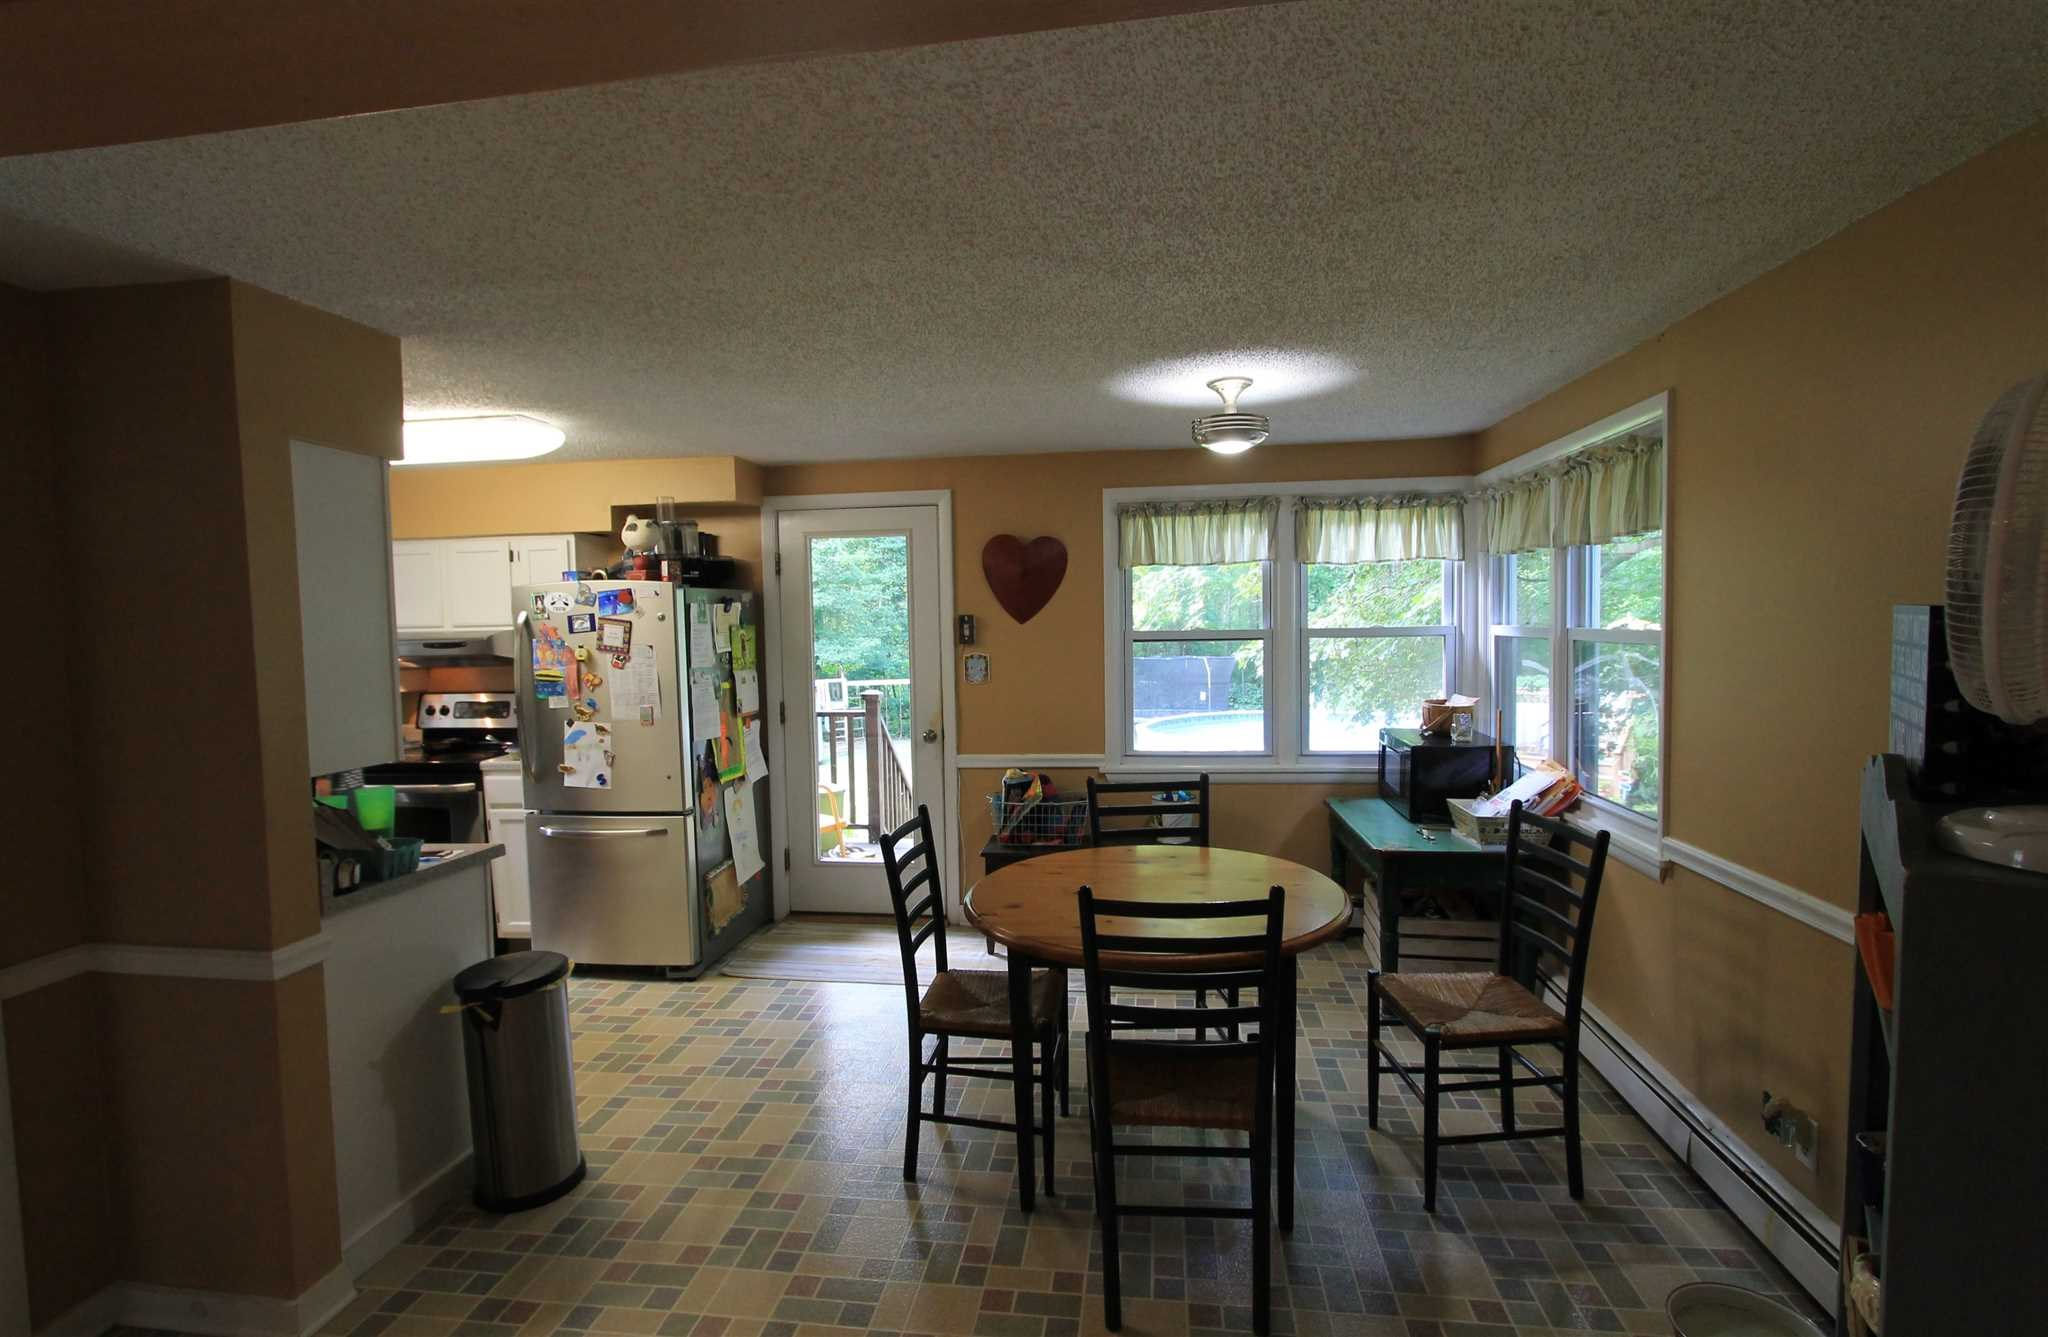 Additional photo for property listing at 51 UPPER HOOK ROAD 51 UPPER HOOK ROAD Rhinebeck, New York 12572 United States